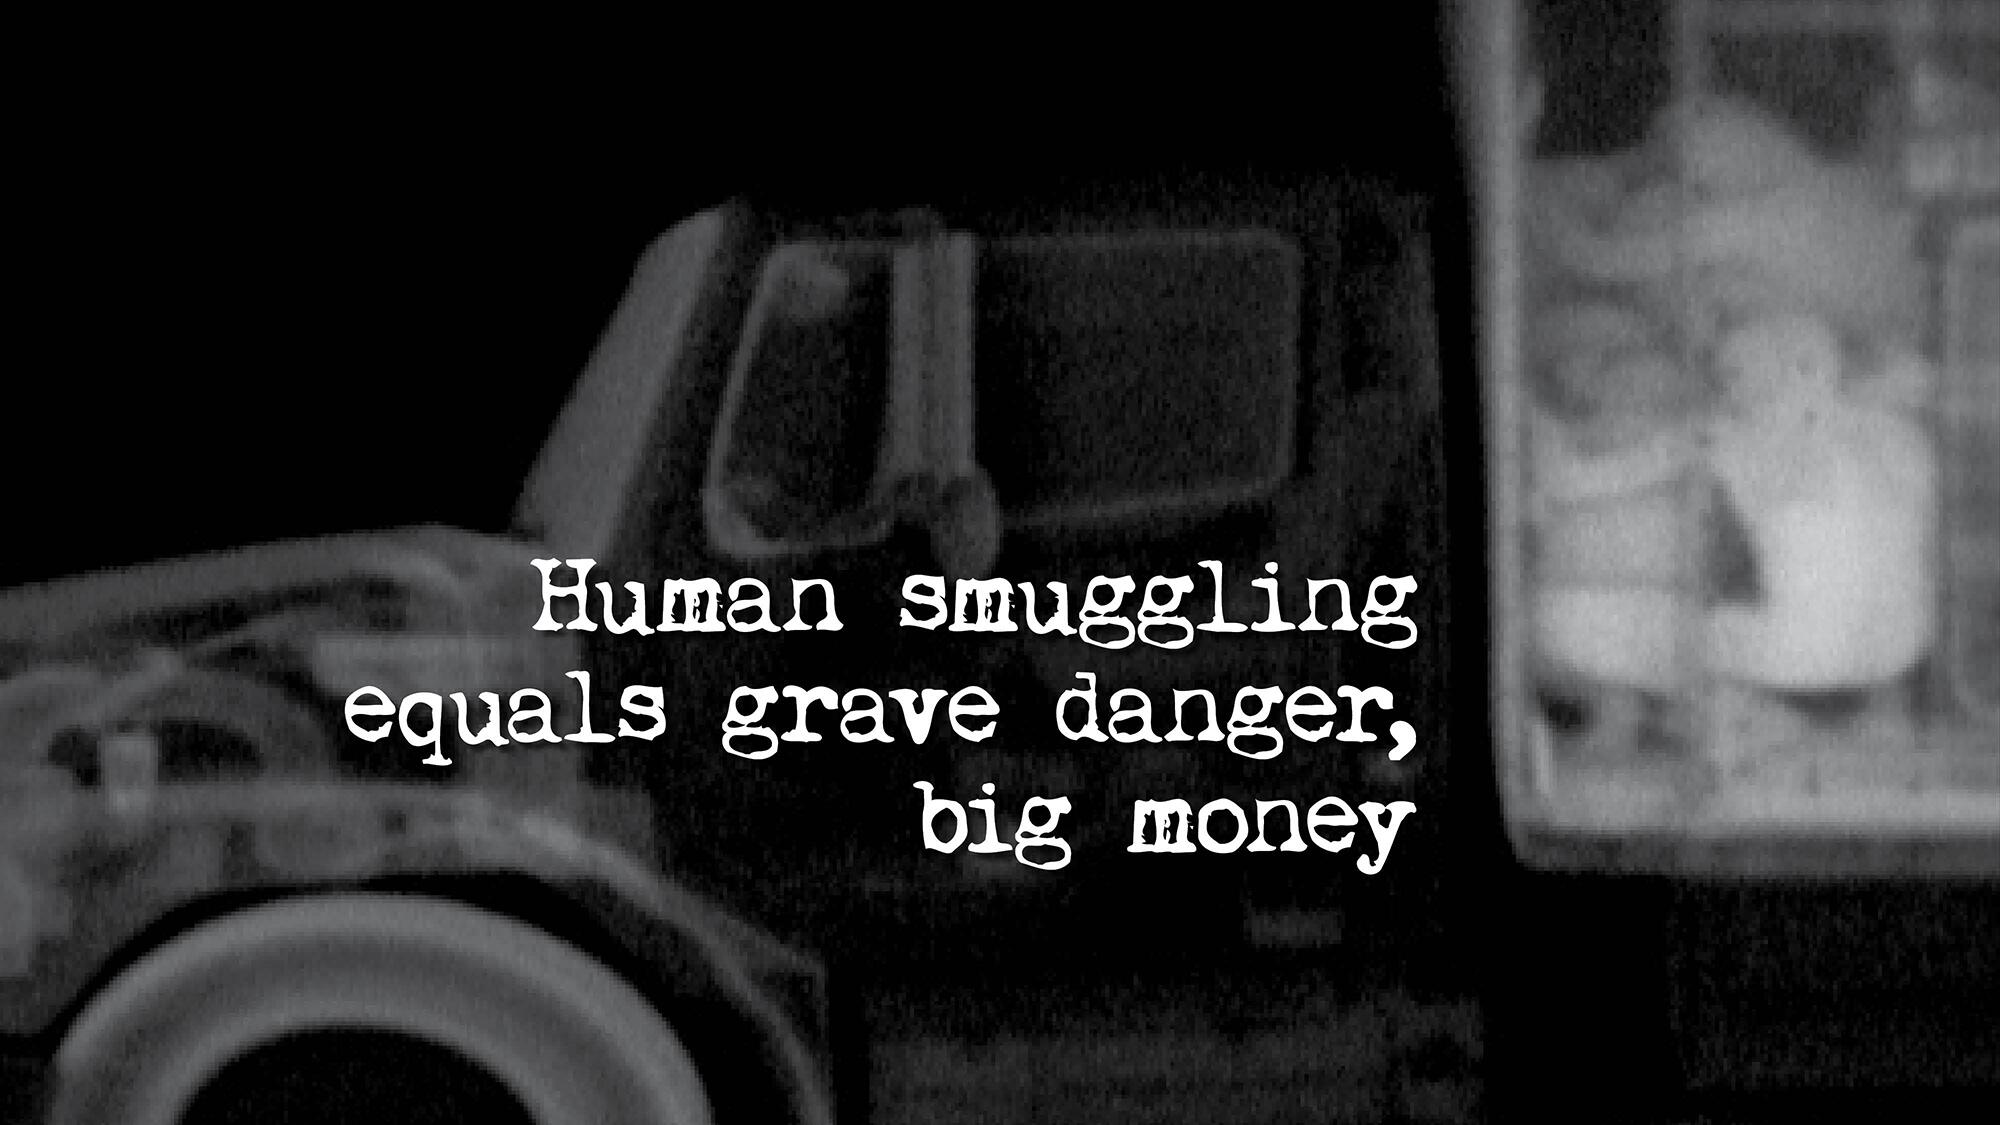 Human smuggling equals grave danger, big money